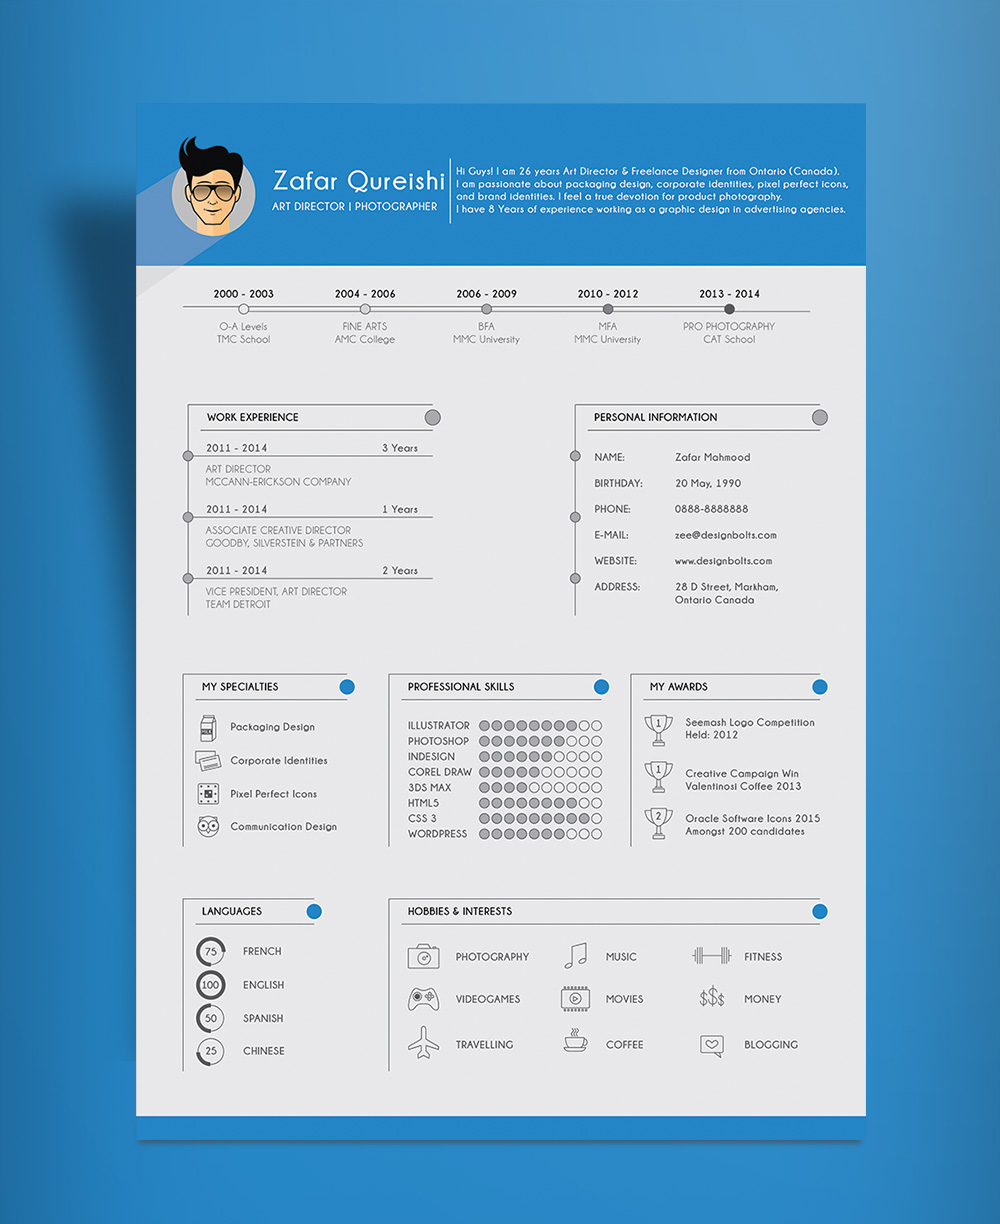 free simple resume  cv  template design for art director  u0026 photographer ai file